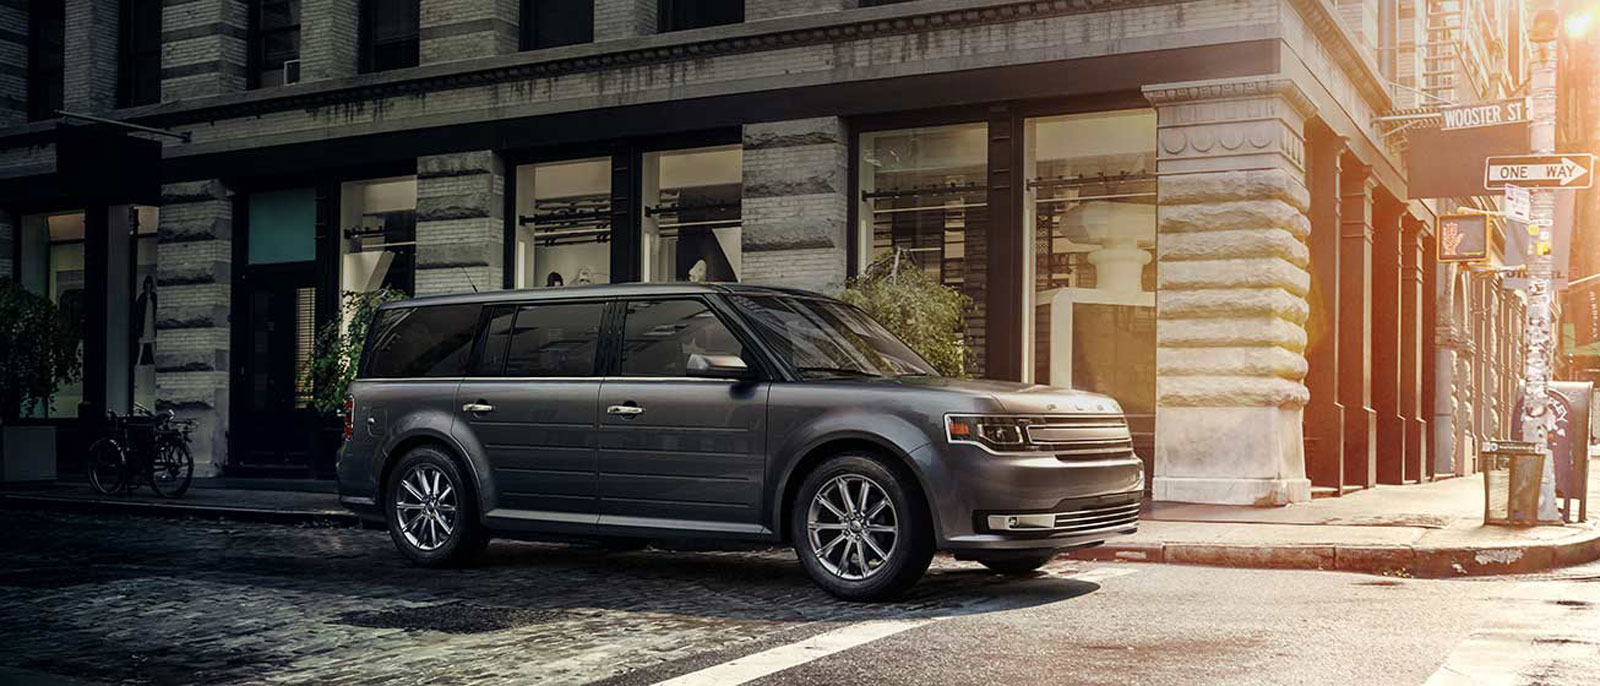 Ford Flex Parked On Street